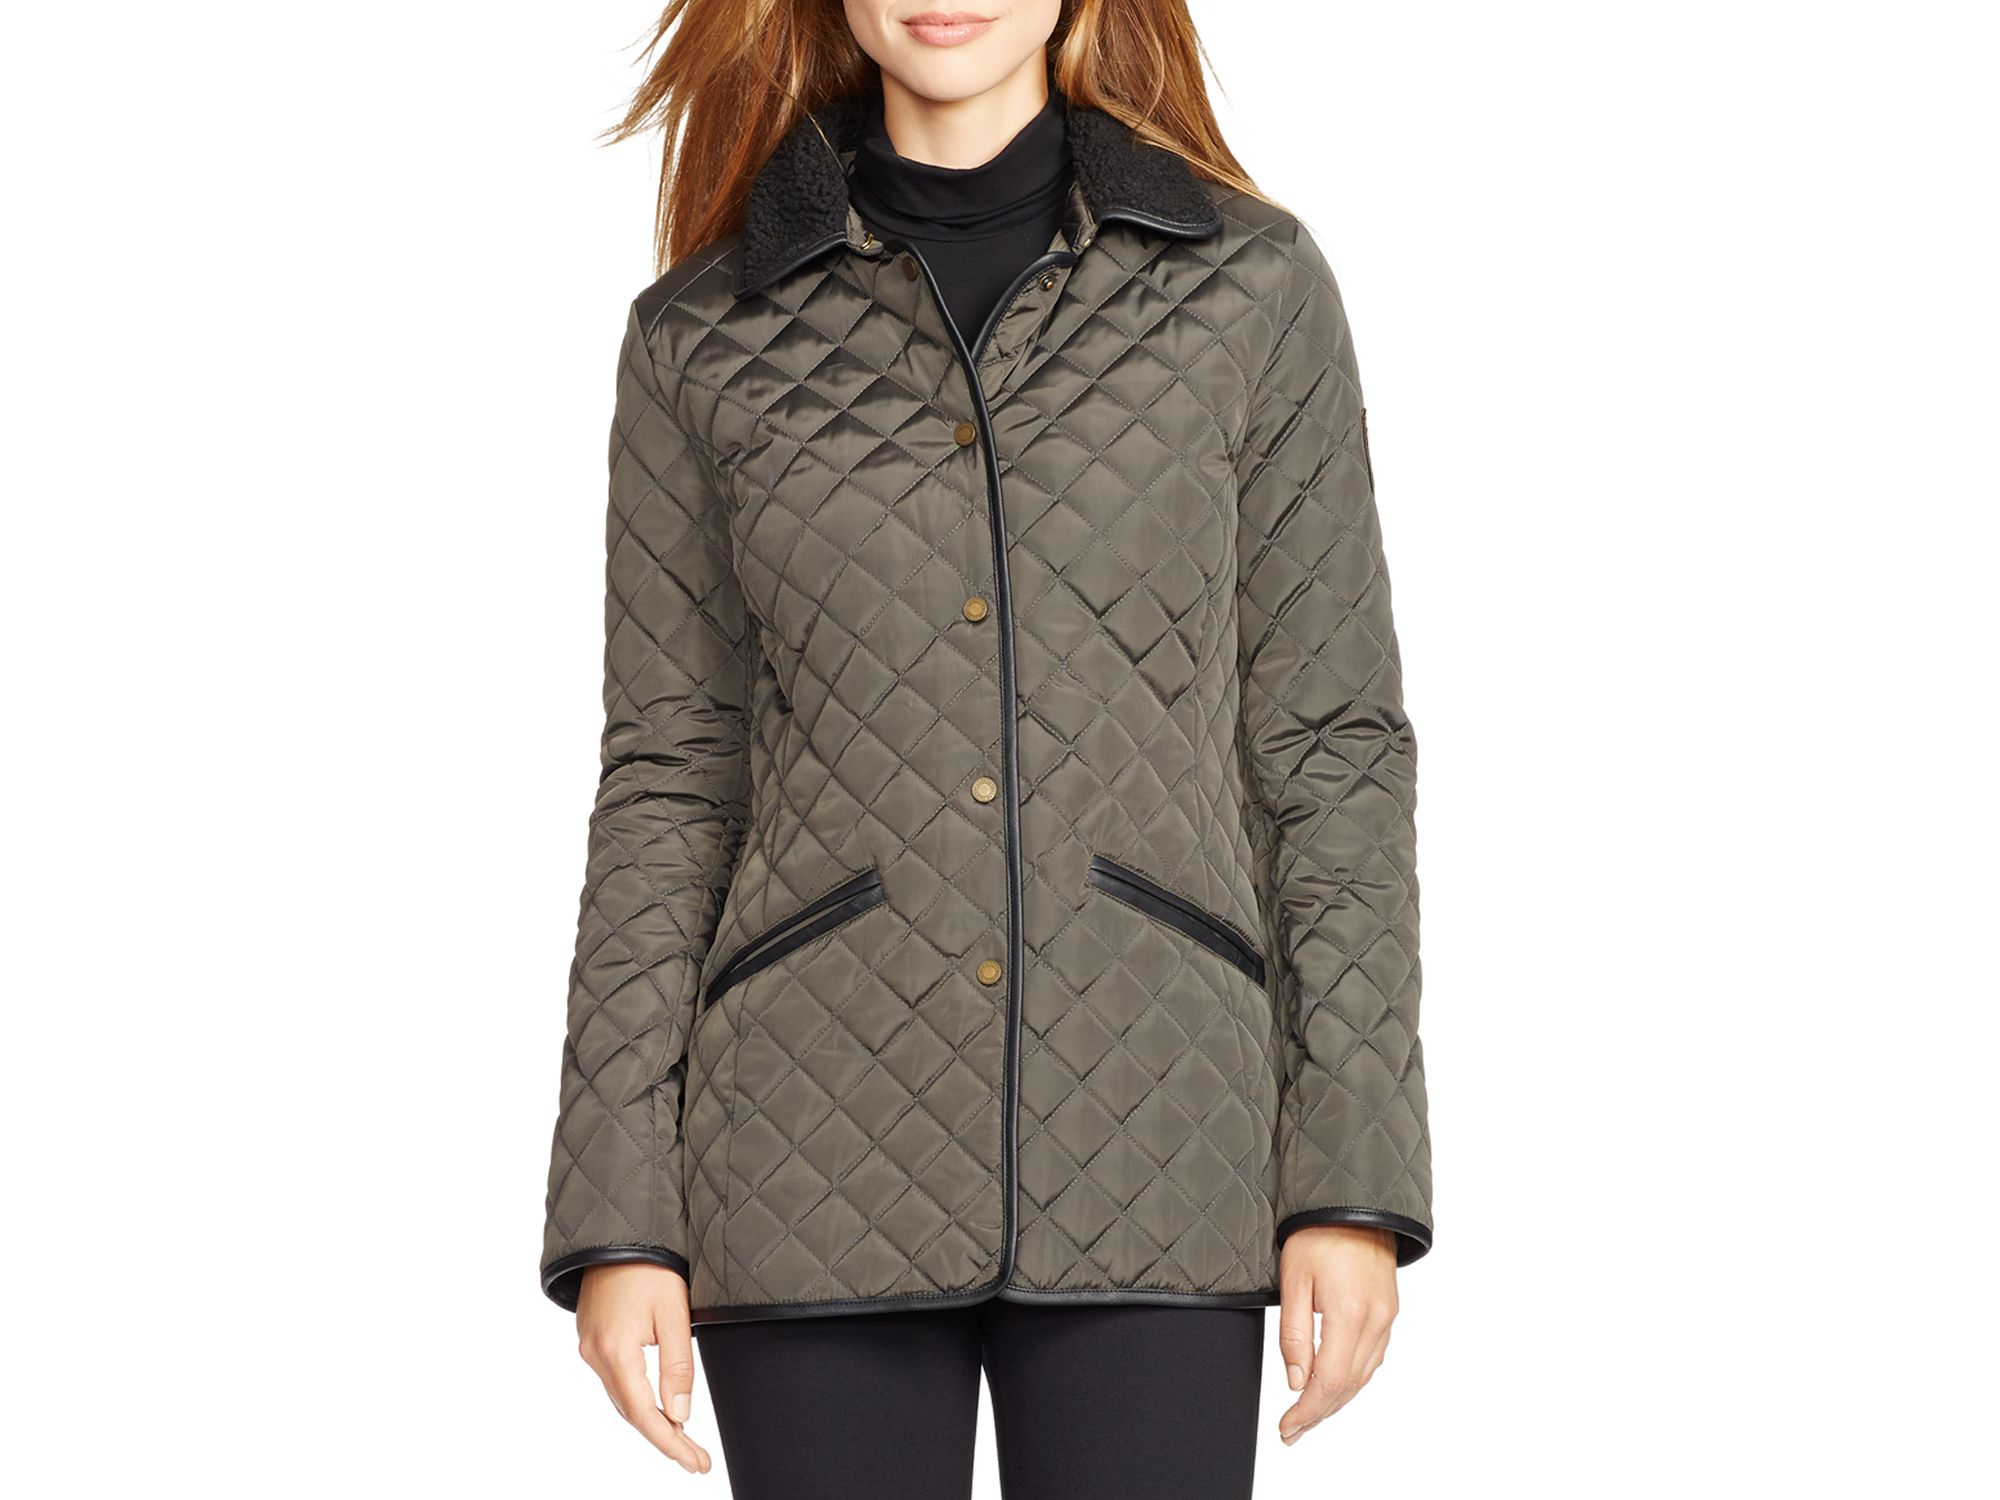 barn ralston women womens s barns jacket canvas w